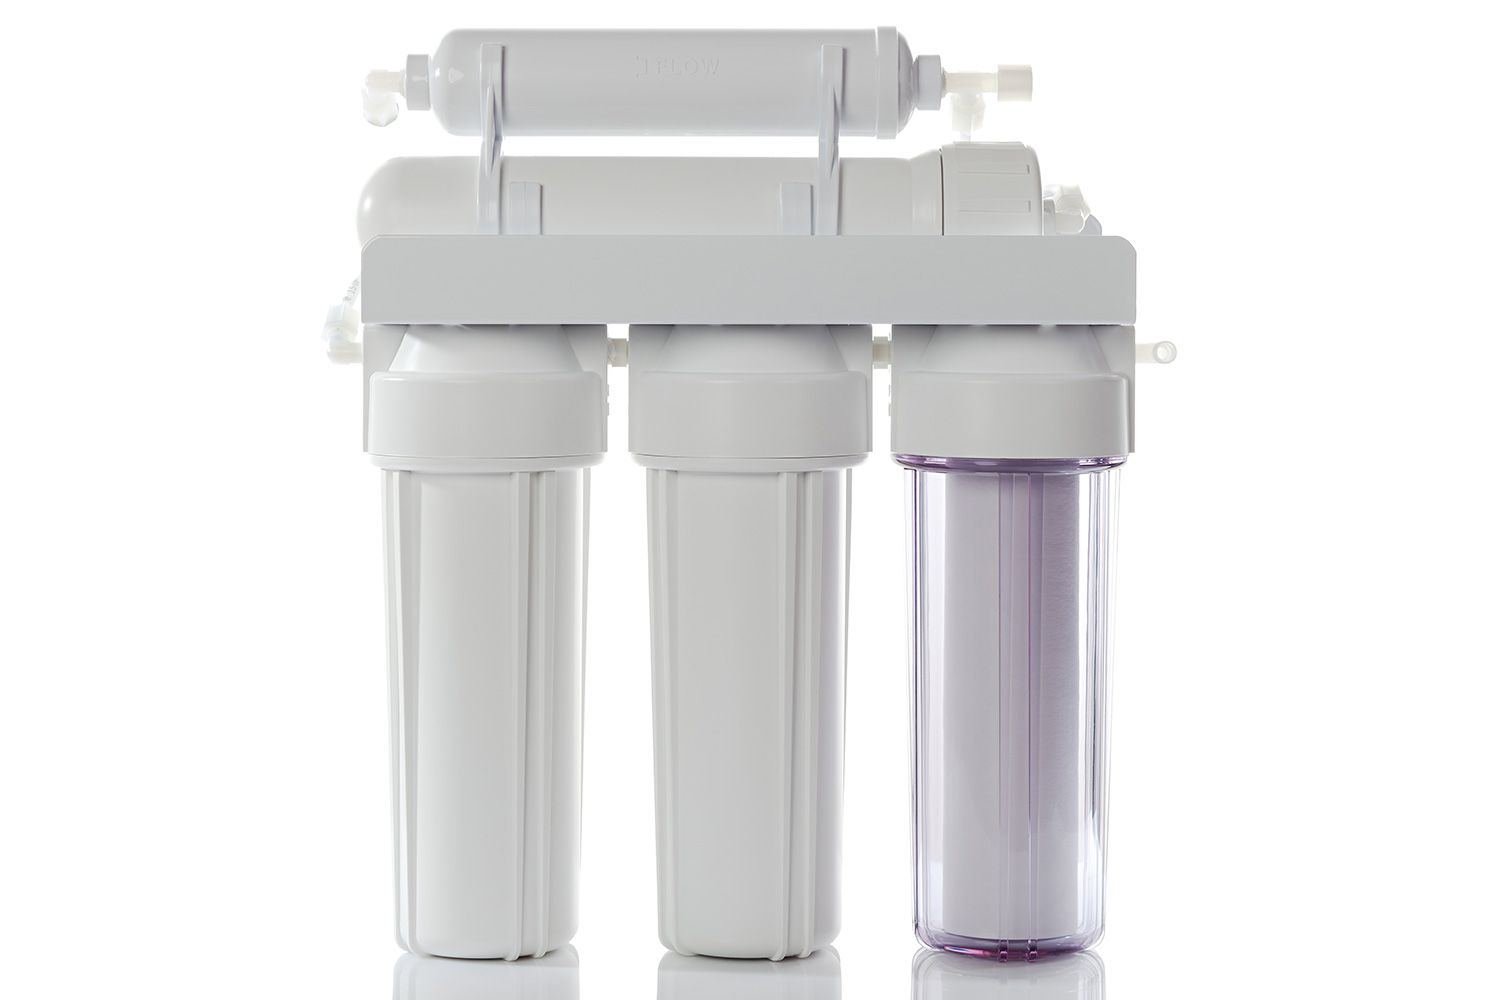 Installing a Reverse Osmosis Water Filtration System